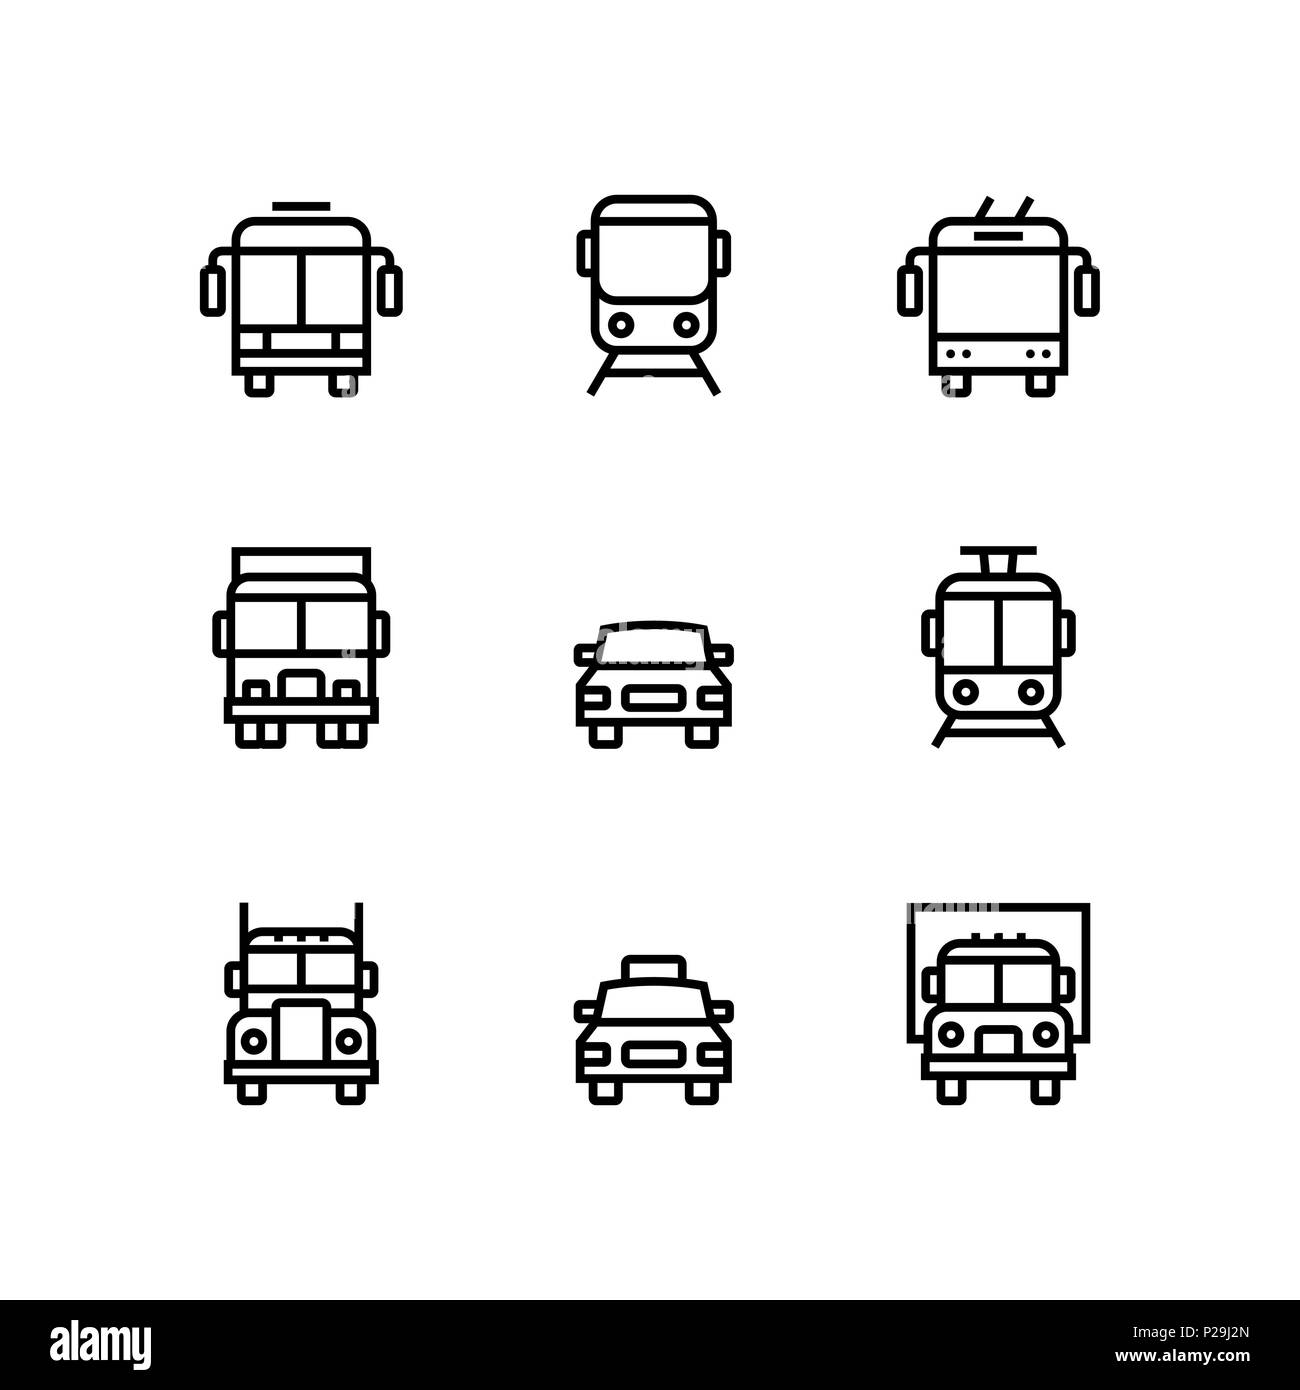 Transport, vehicle, truck and car simple vector icons for web and mobile design pack 1 - Stock Image